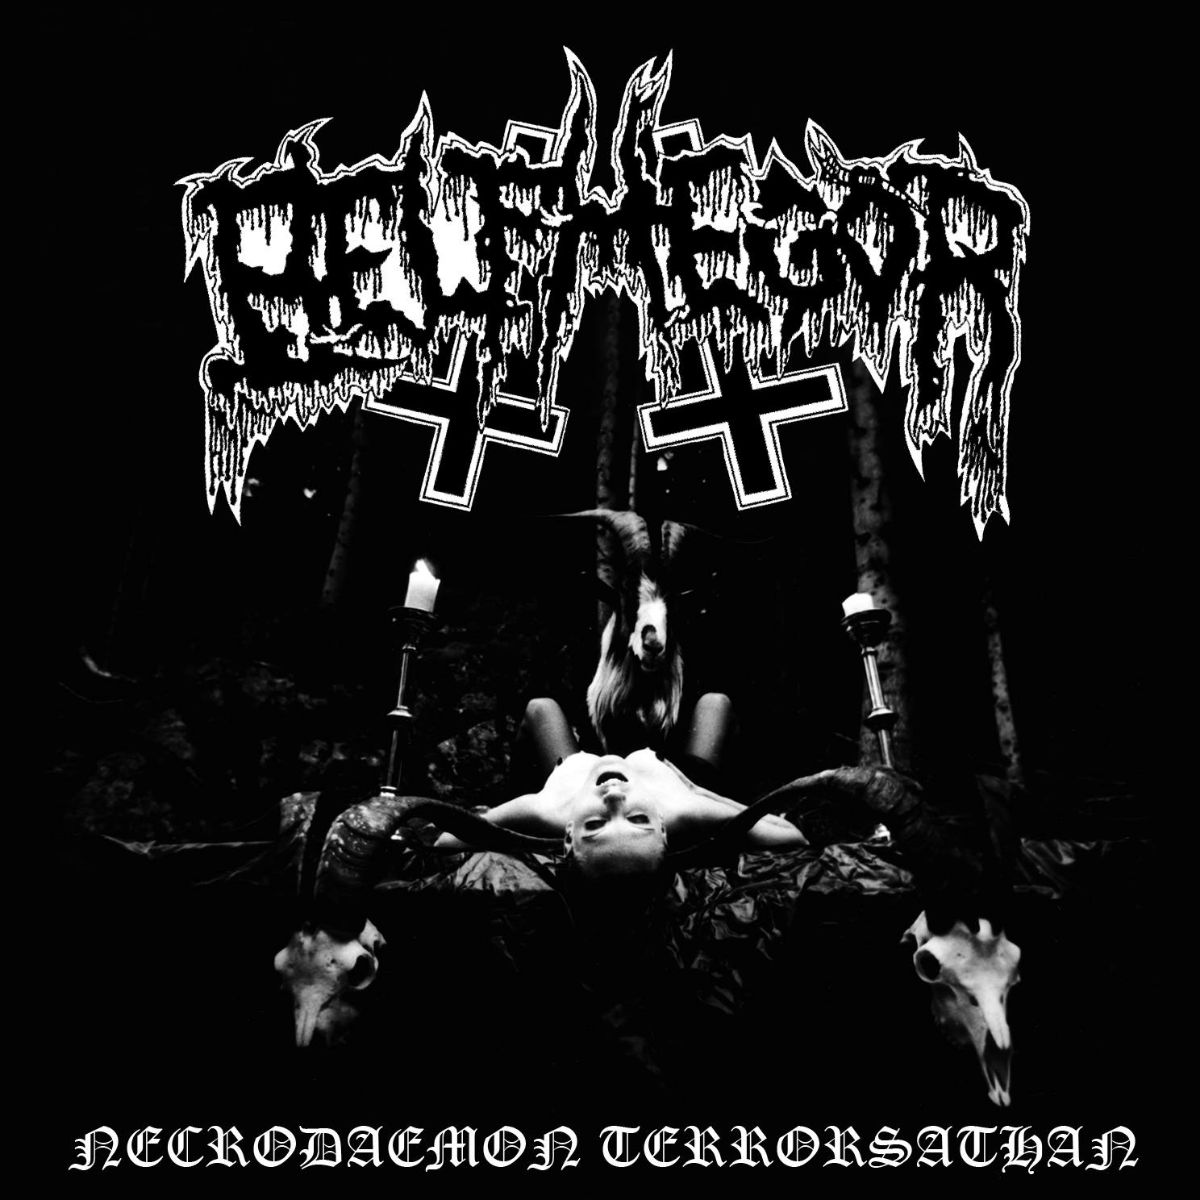 BELPHEGOR: Neues Video zu remastertem Re-Release